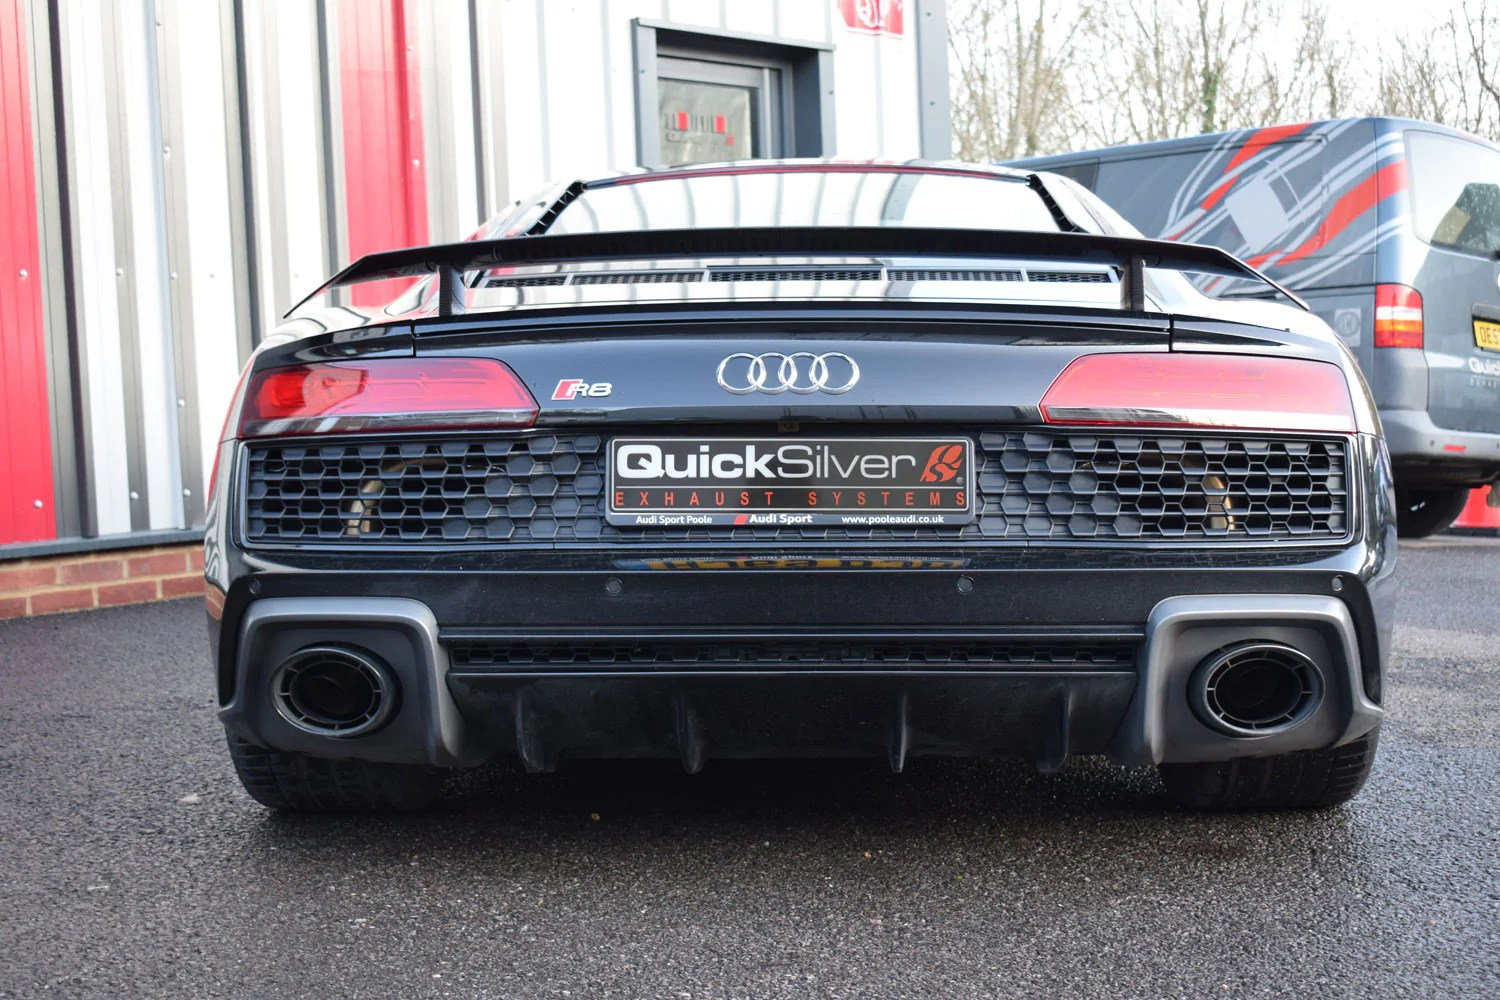 audi r8 v10 with gpfs active sport exhaust with or without gpf delete pipes 2020 on euro spec